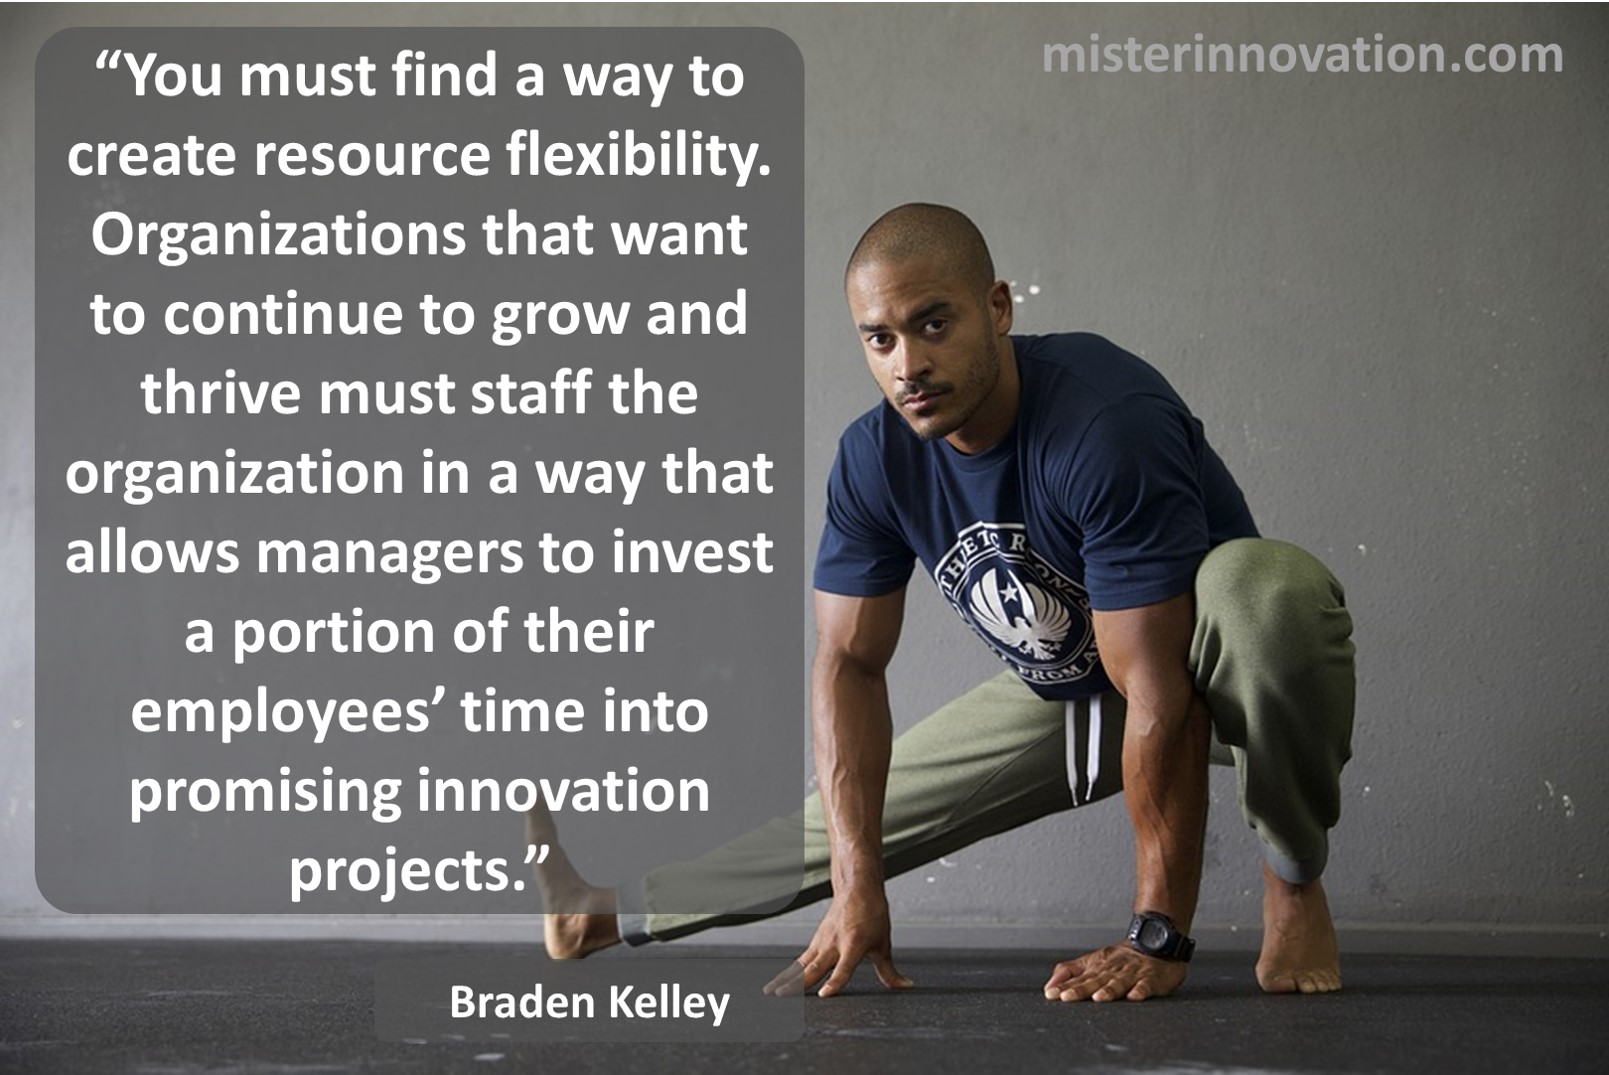 Braden Kelley Quote on Importance of Resource Flexibility for Innovation